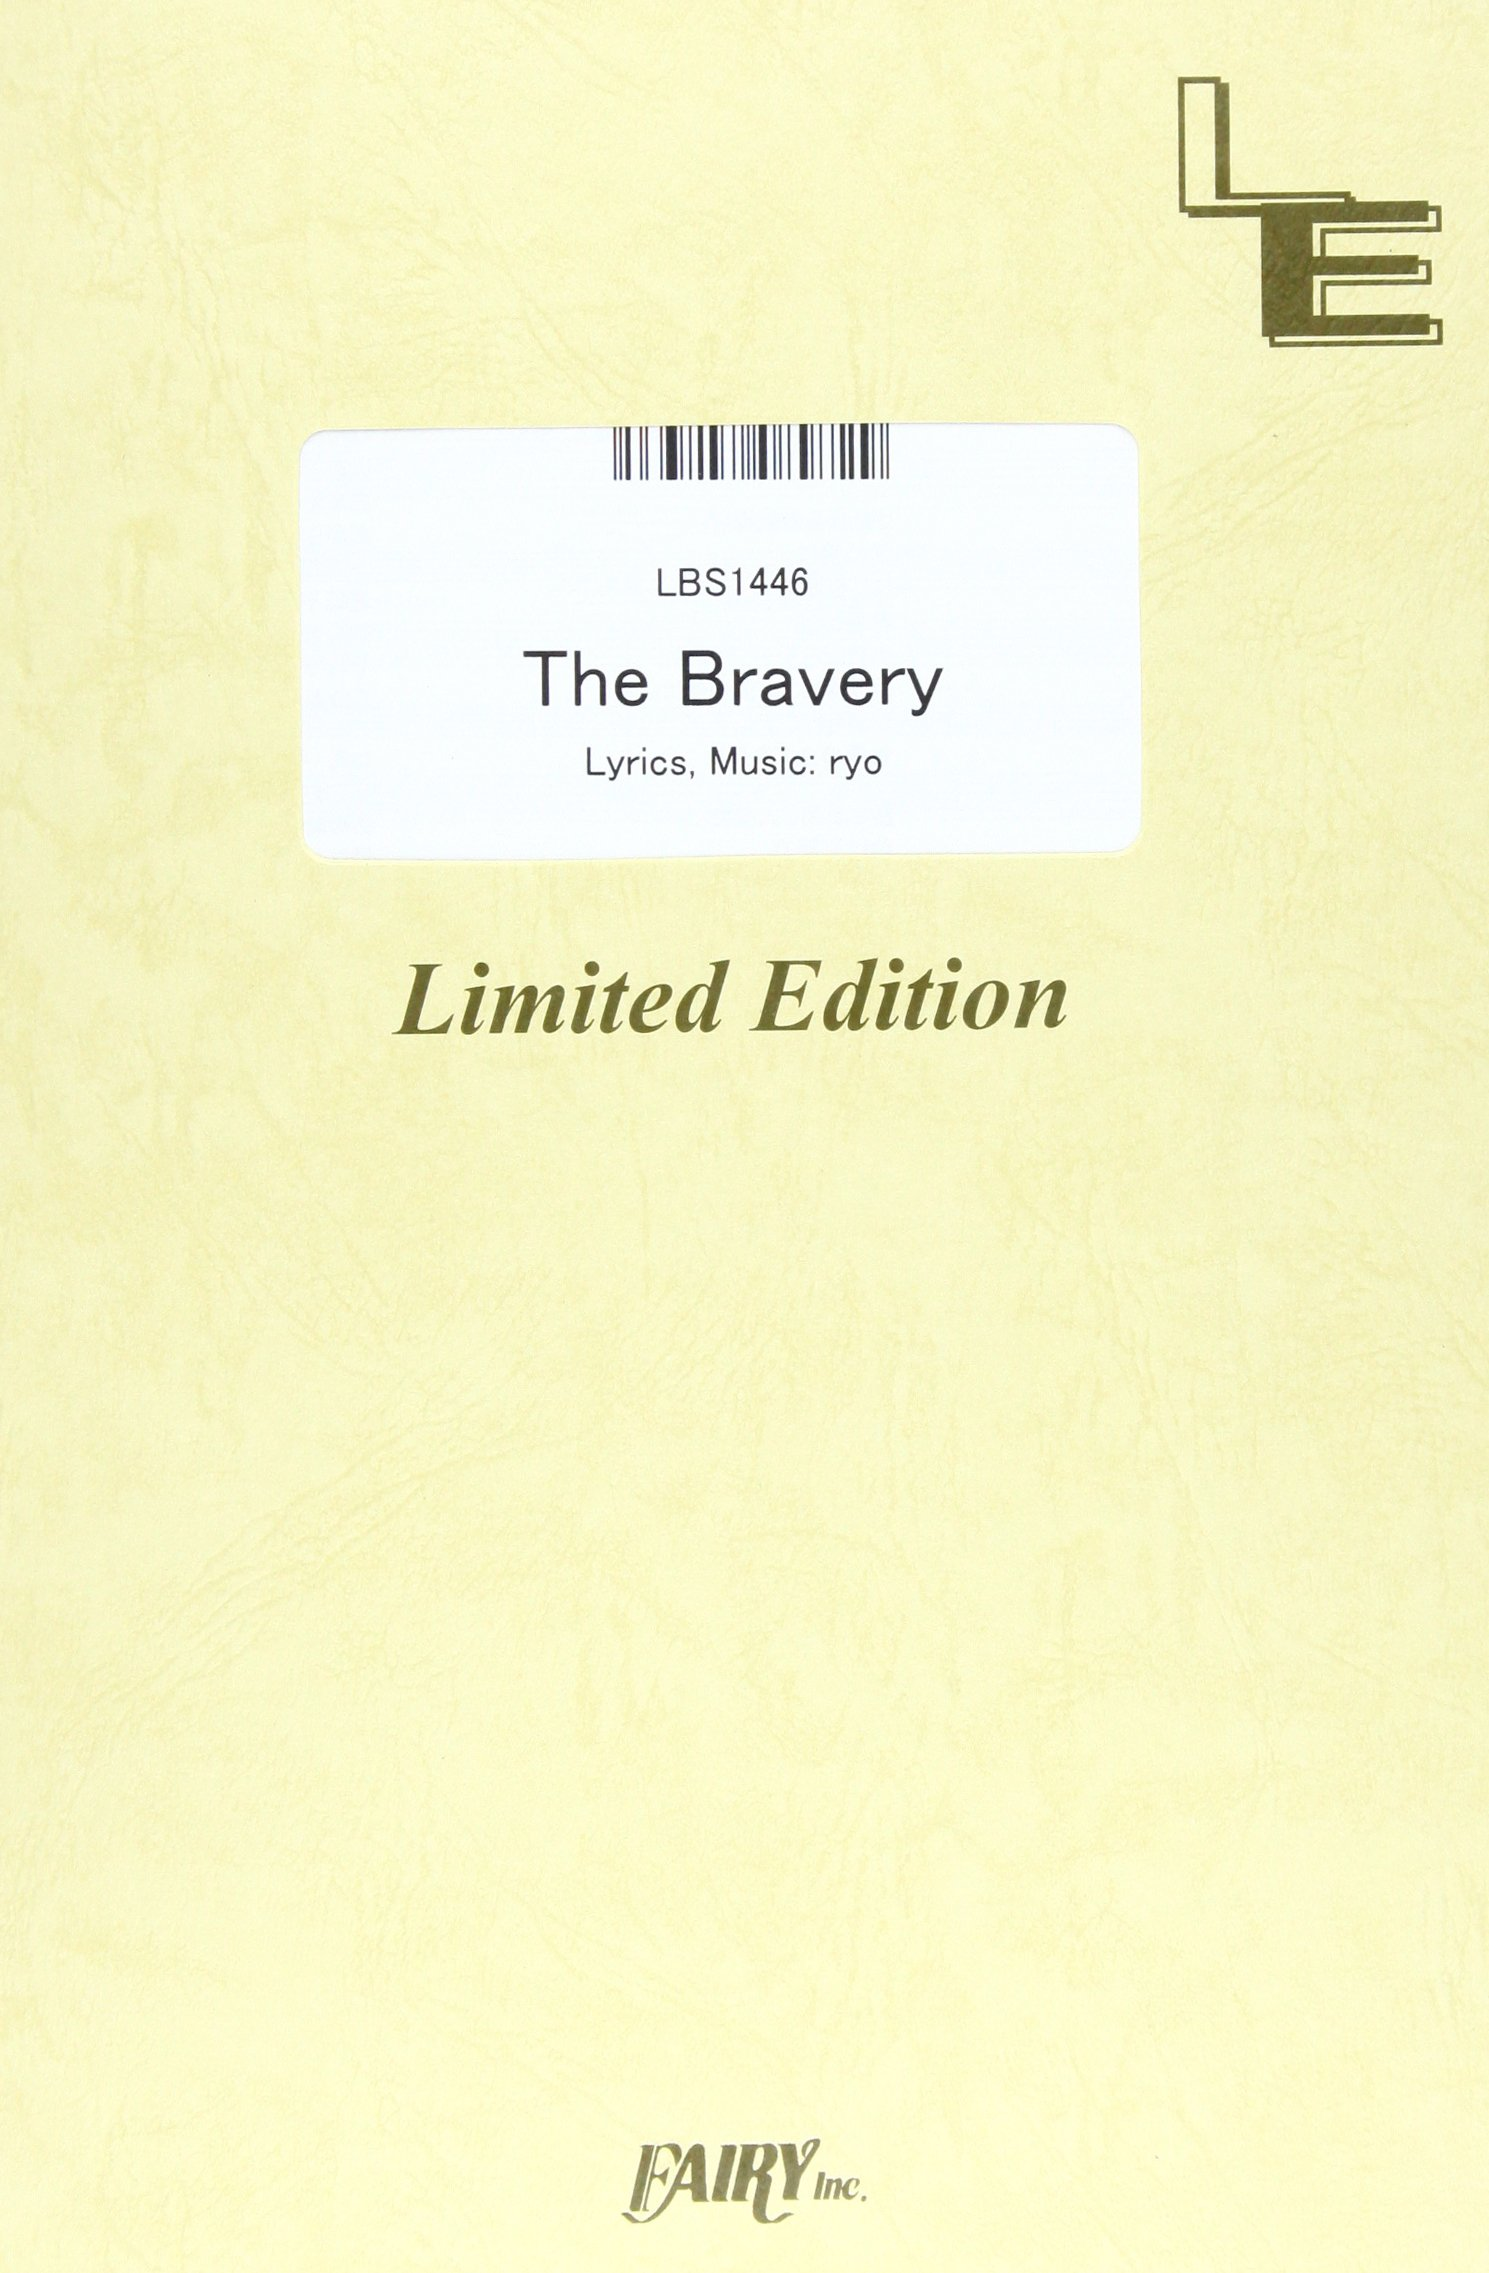 Download The Bravery (Magi: The Labyrinth of Magic Endings) by supercell LBS1446 PDF